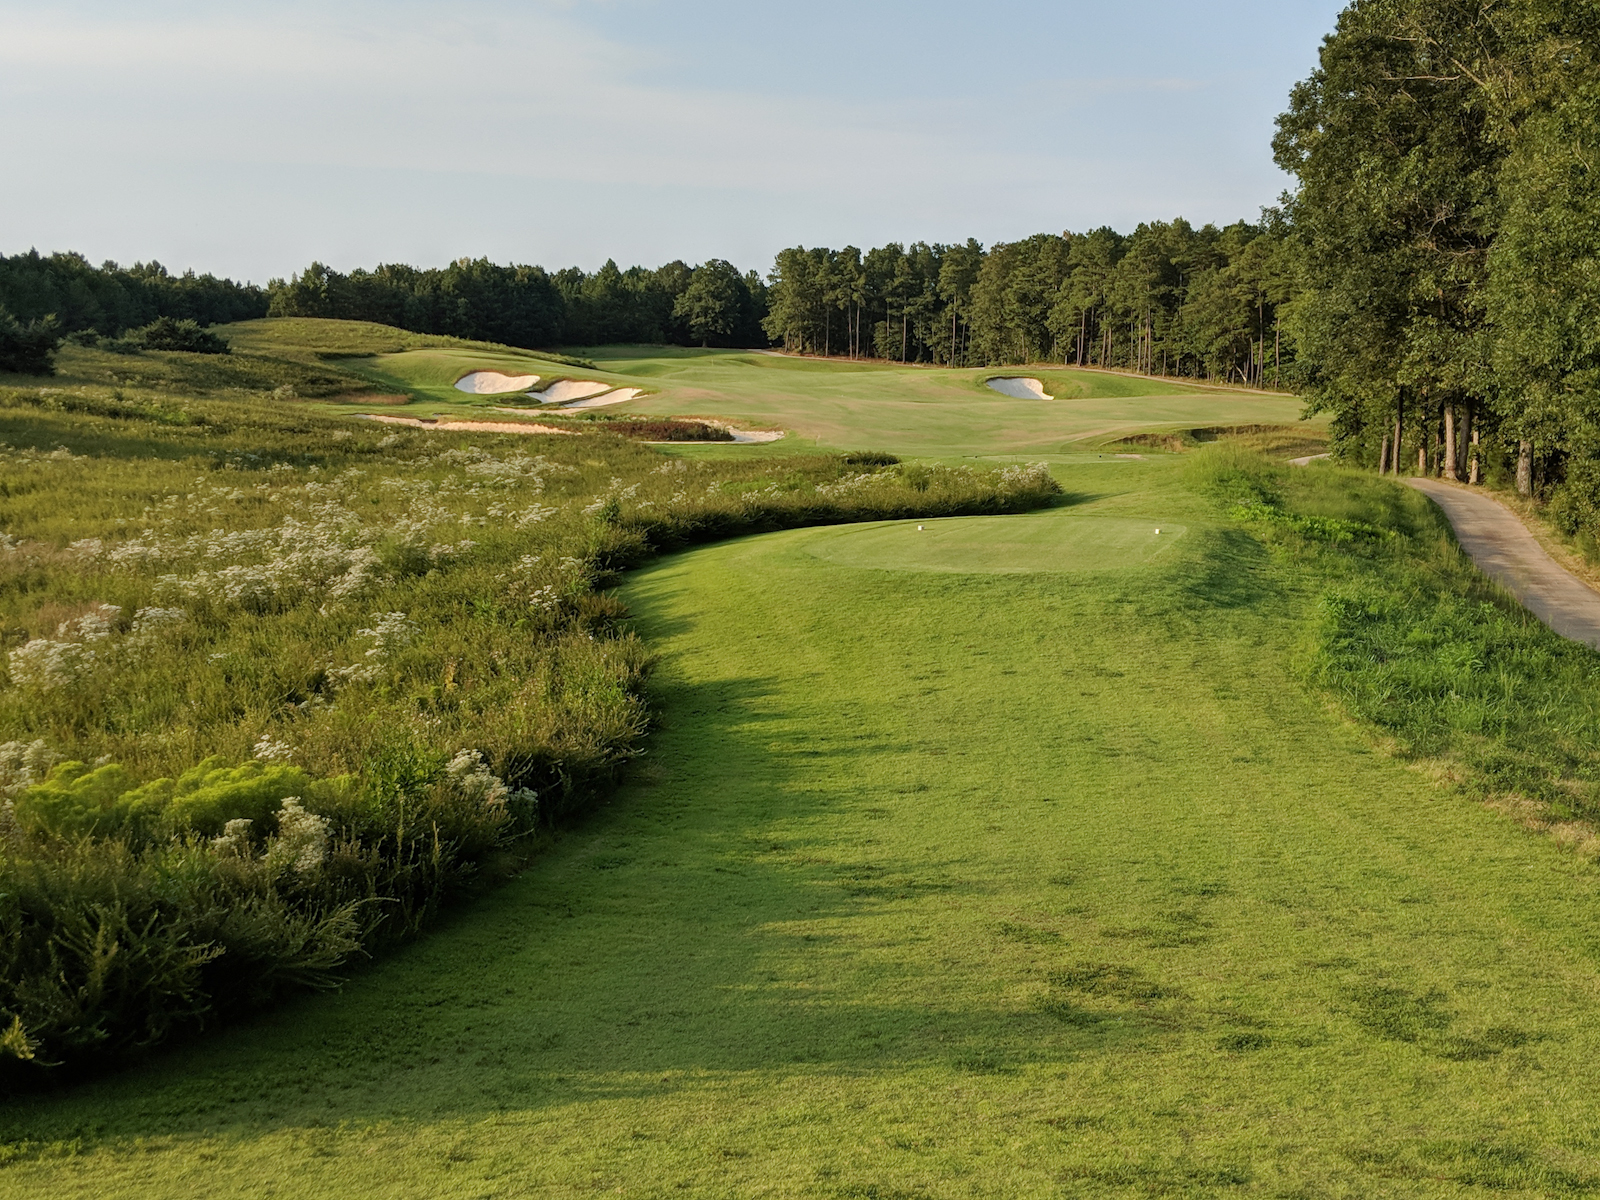 Royal_New_Kent_Gof_Club-Course_by_Terri_Aigner-35-of-74